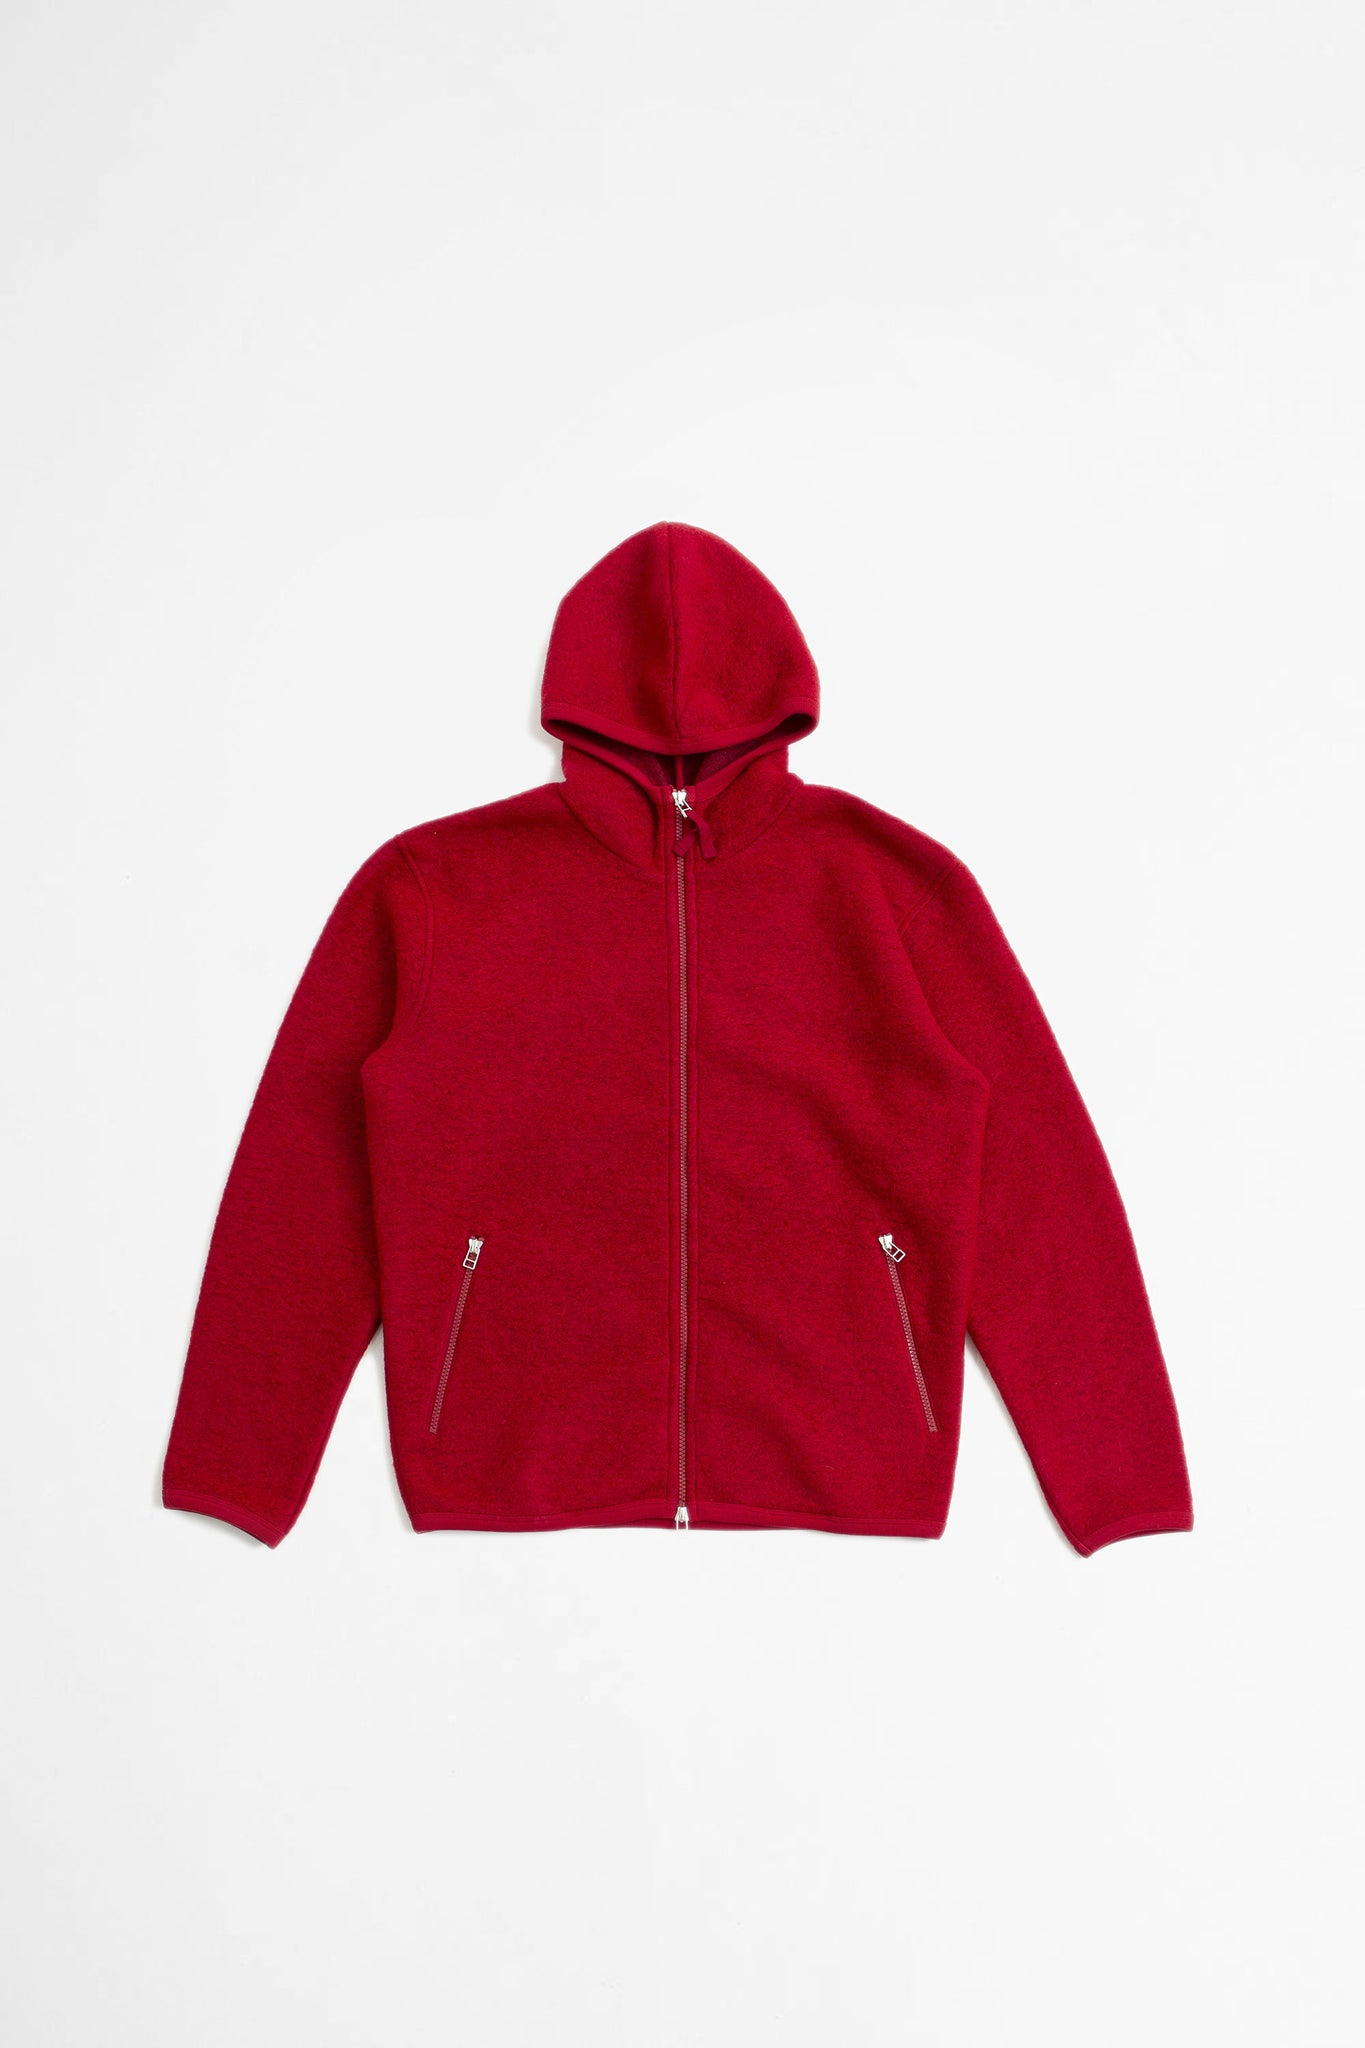 Surfer hoodie wool fleece red